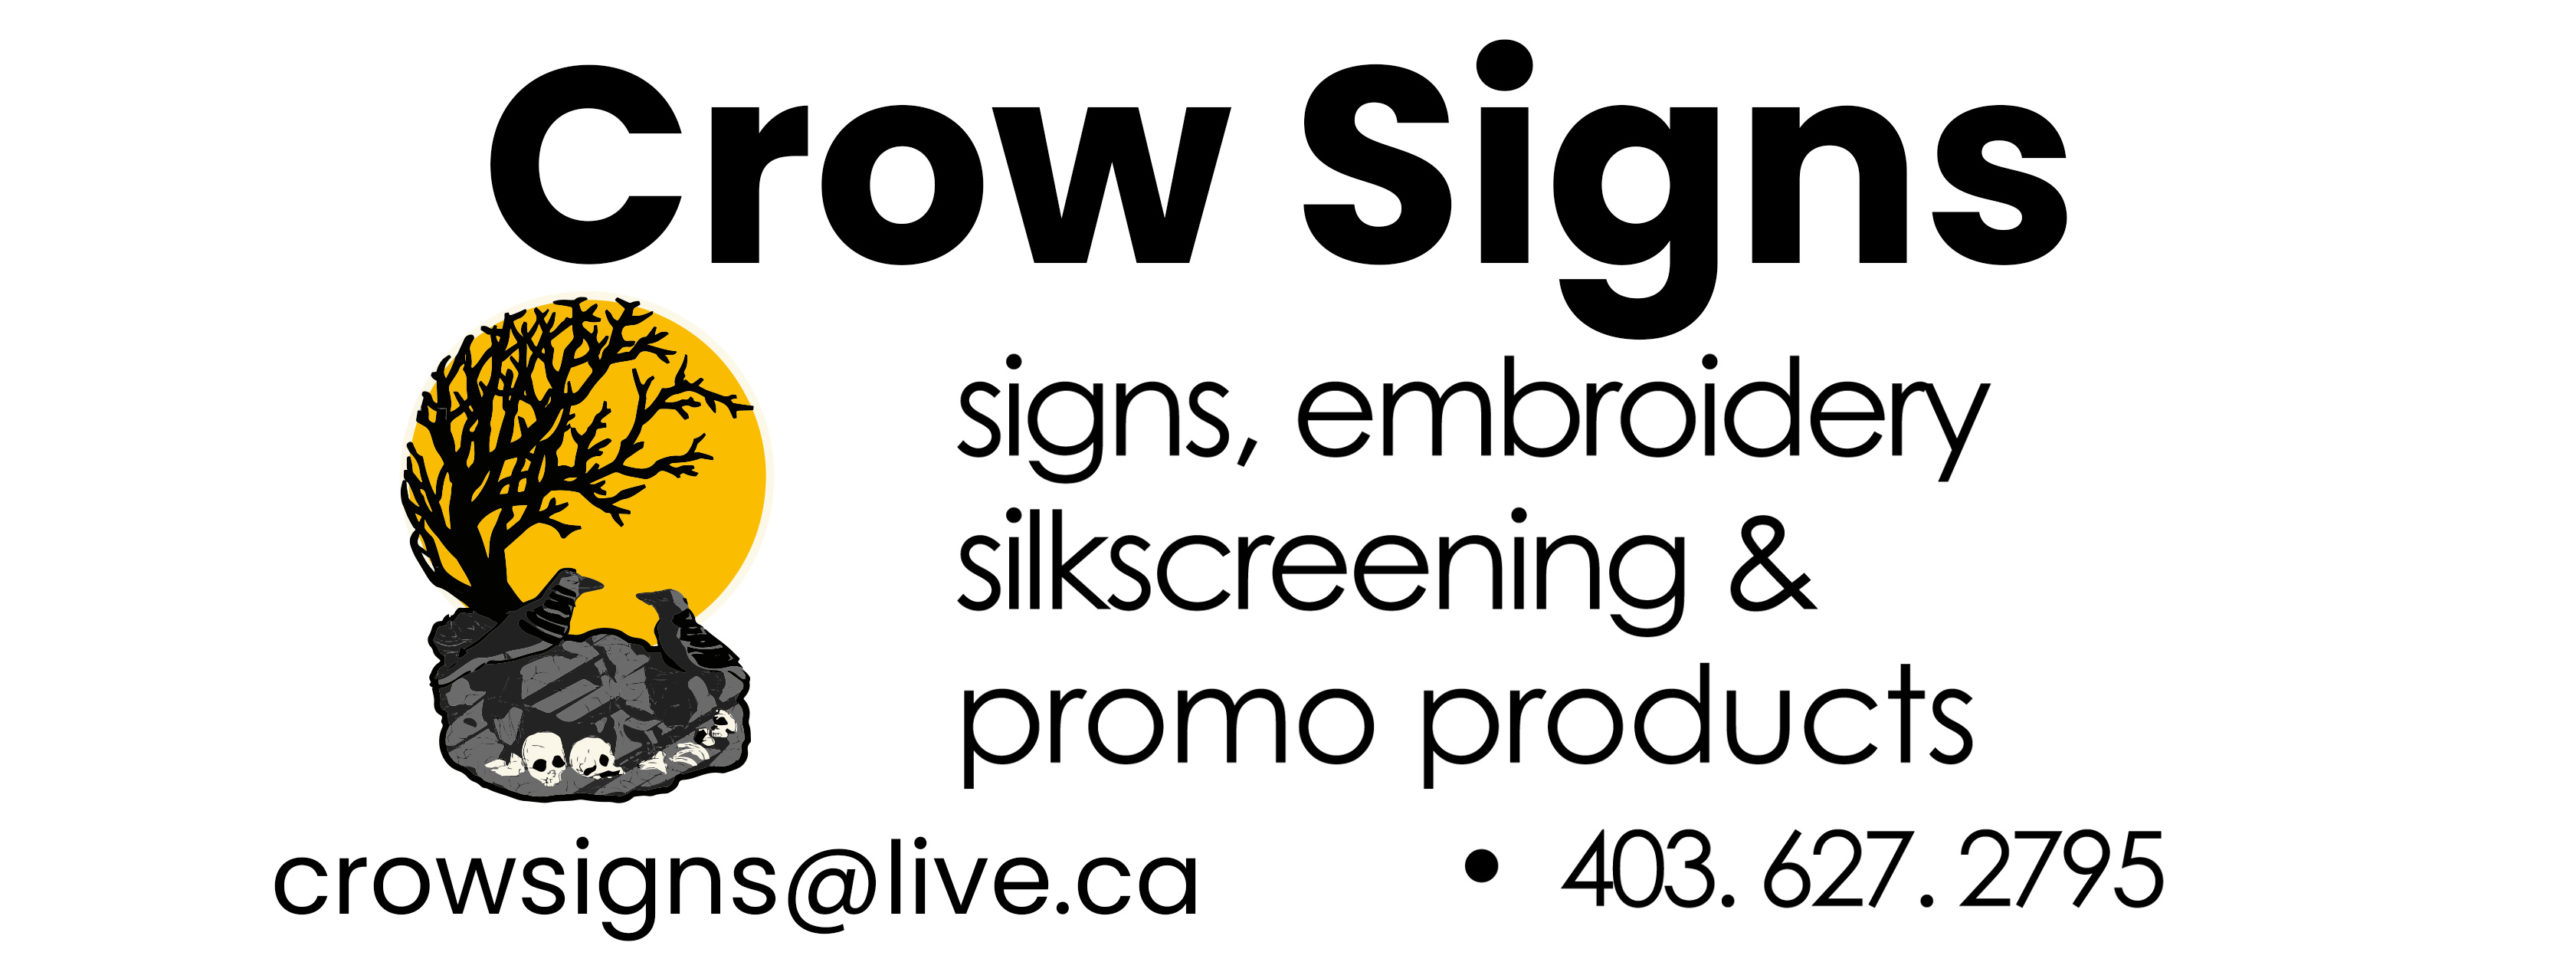 Crow Signs